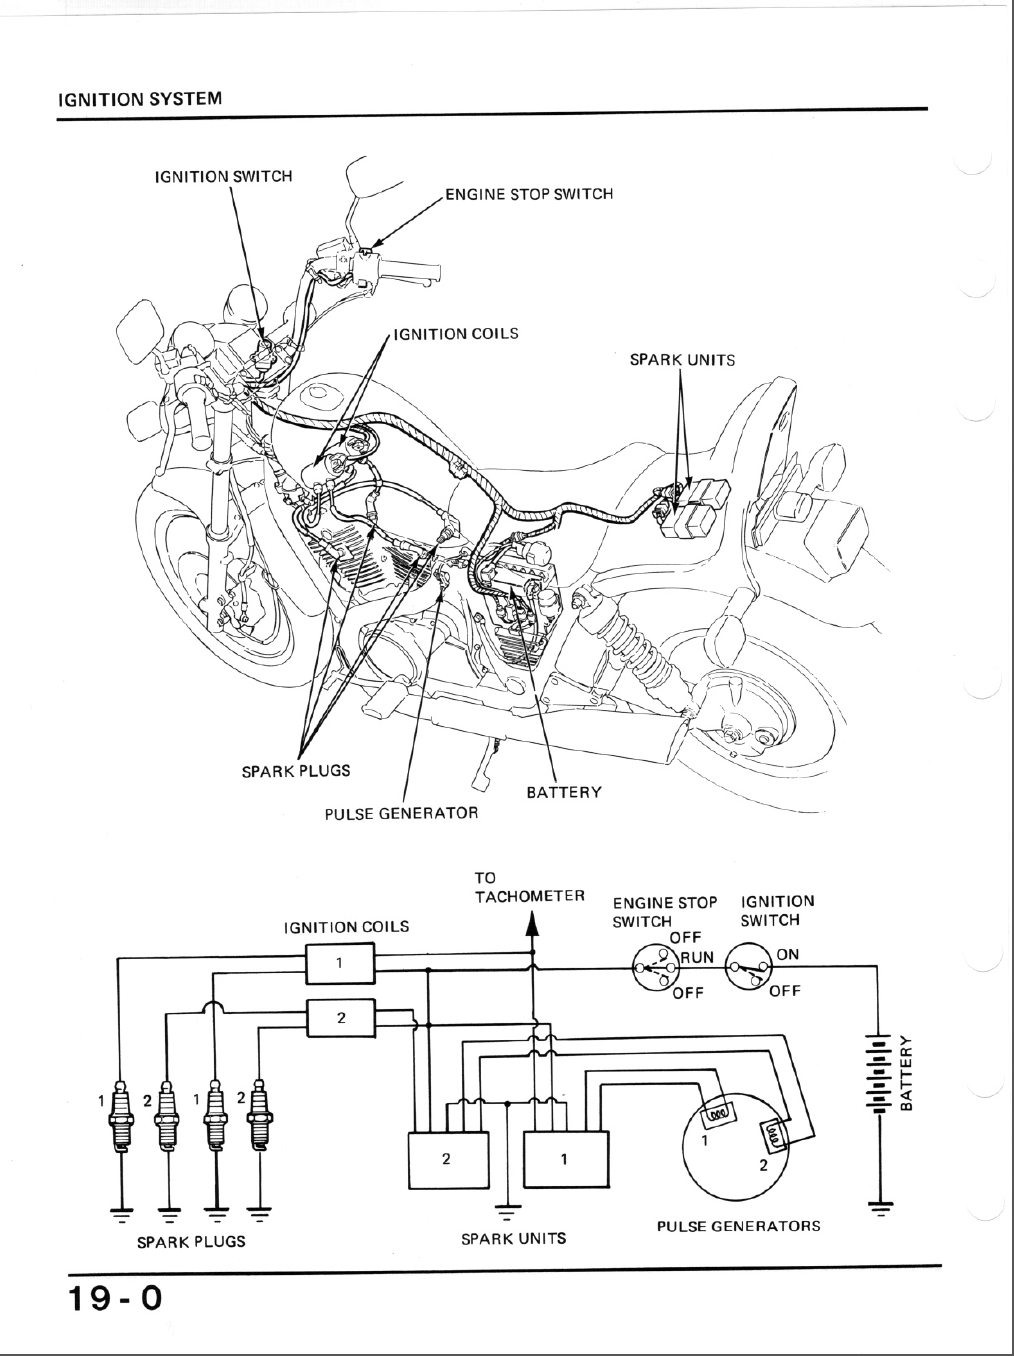 hight resolution of wiring diagram 2000 lincoln l wiring diagram databasewiring diagram honda cb750 wiring diagram 1983 honda magna